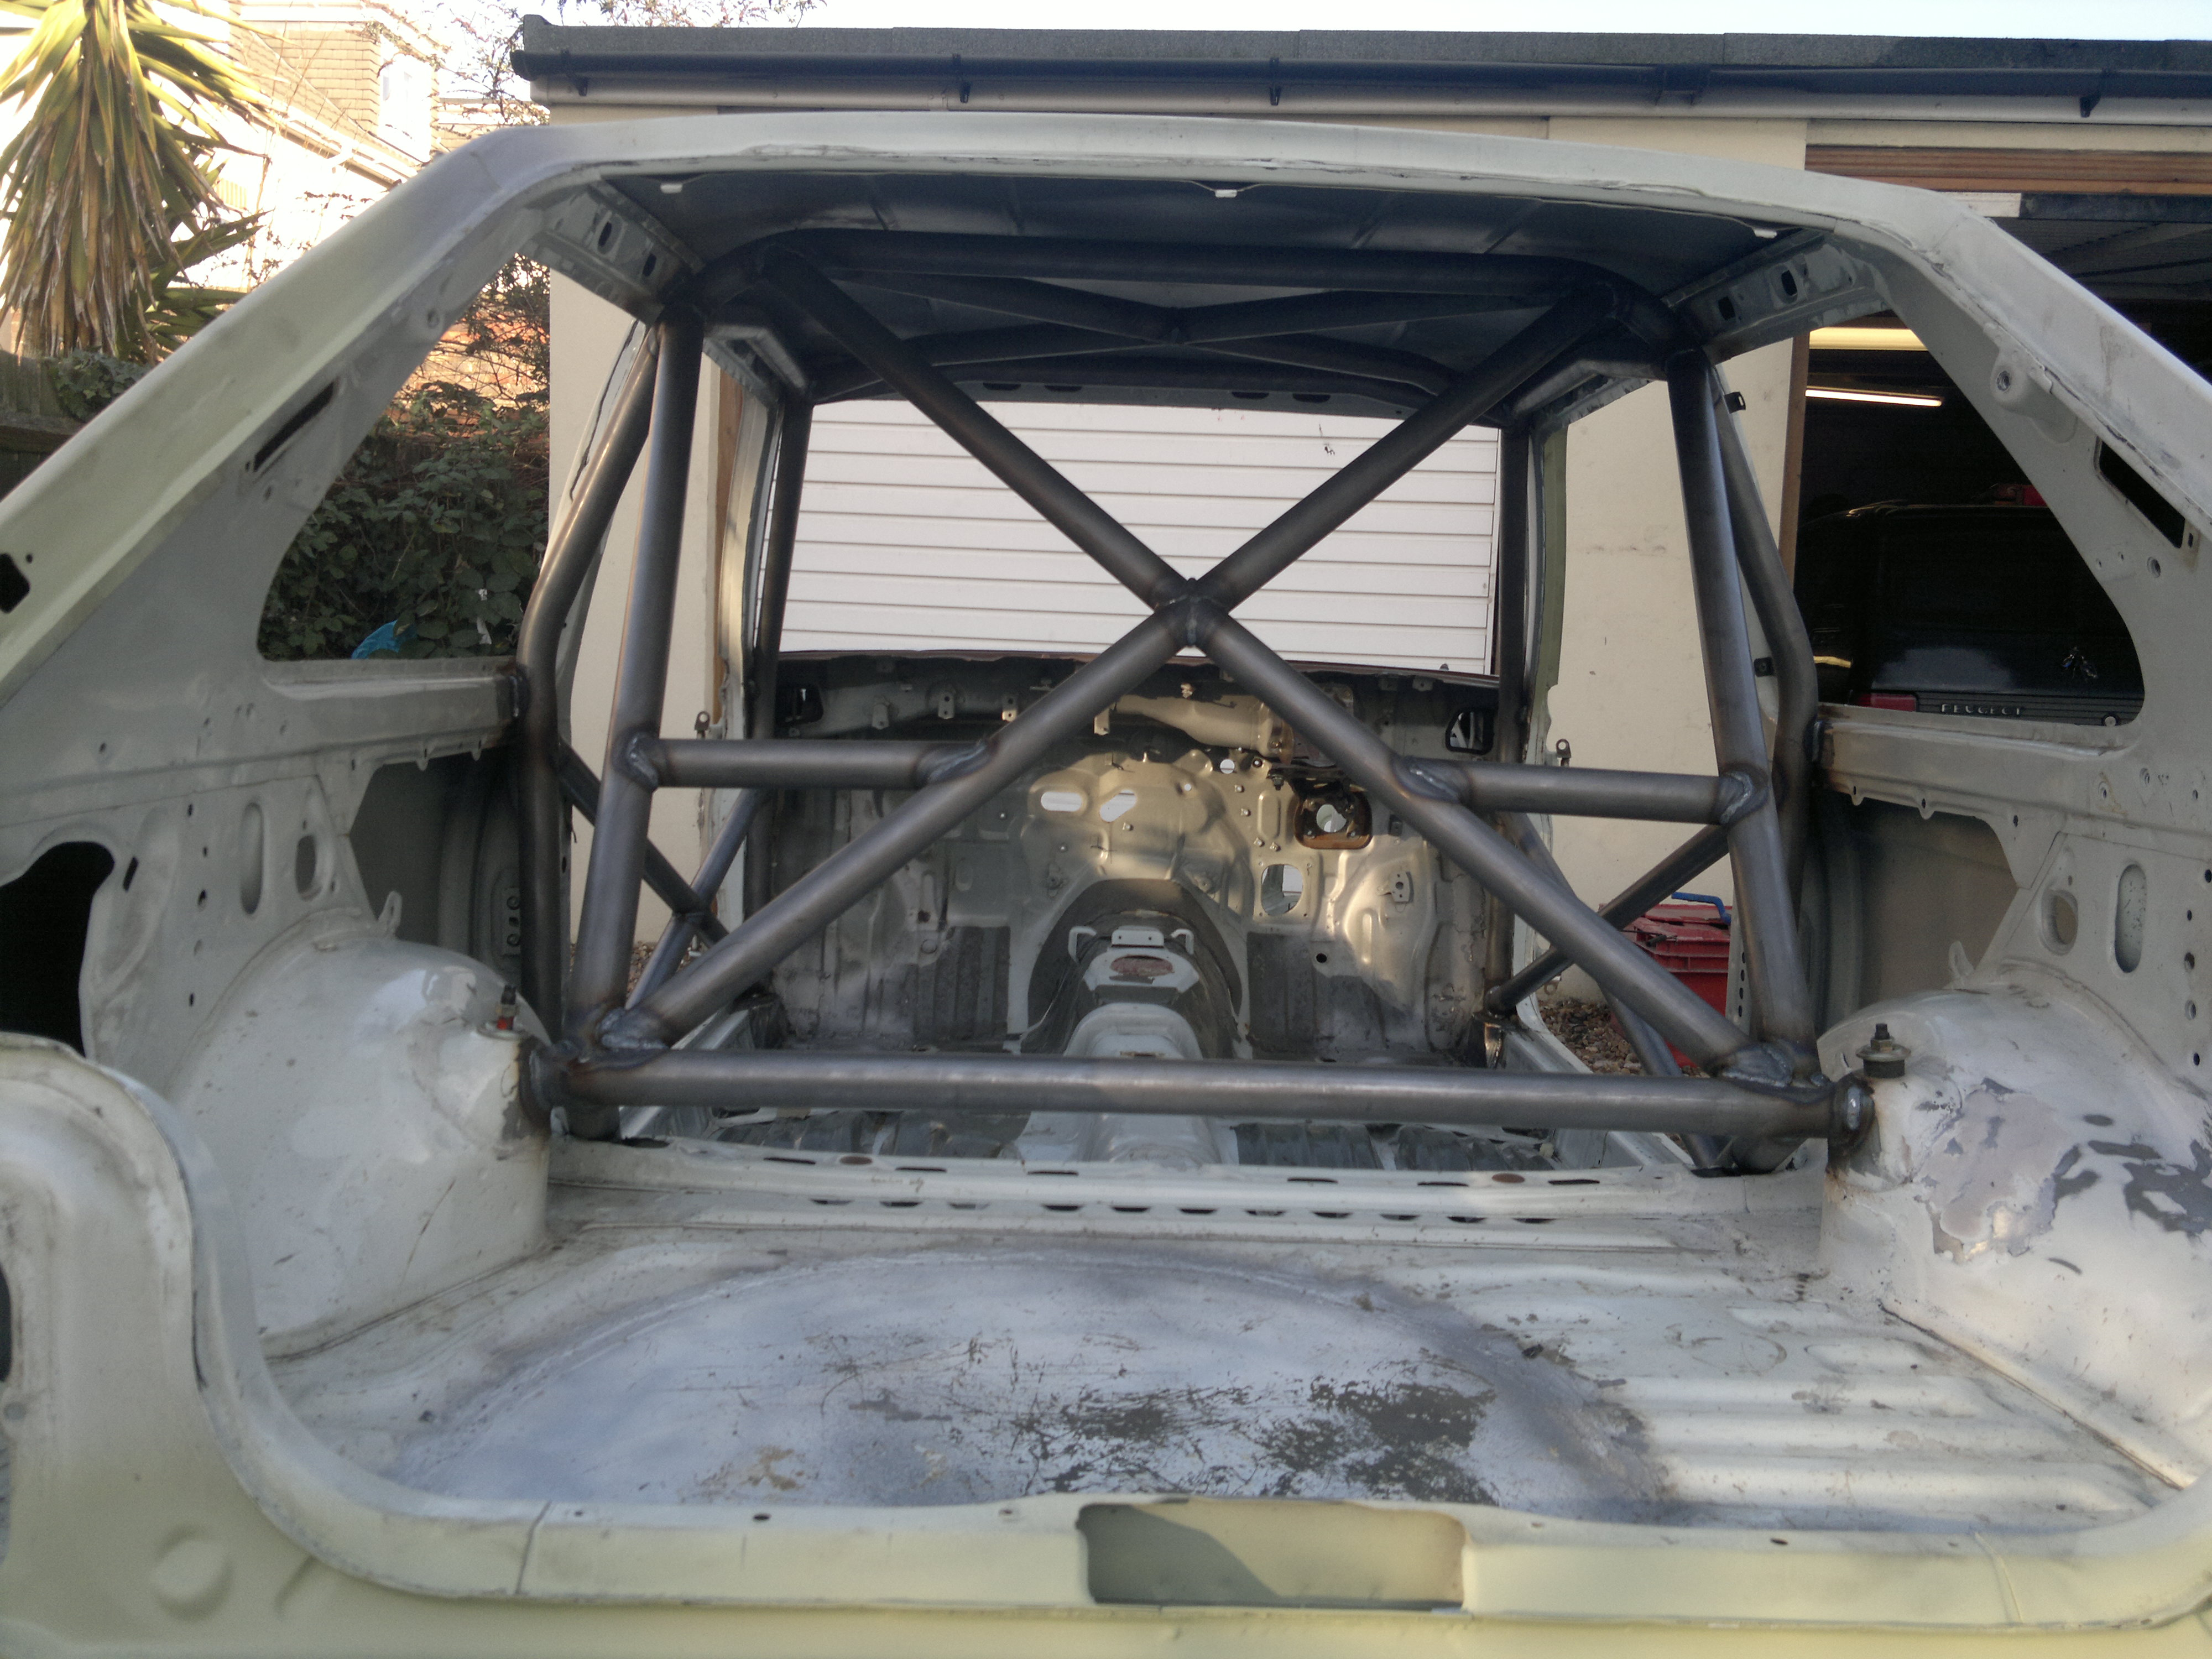 kp60 starlet unfinished project rwd track/drift car